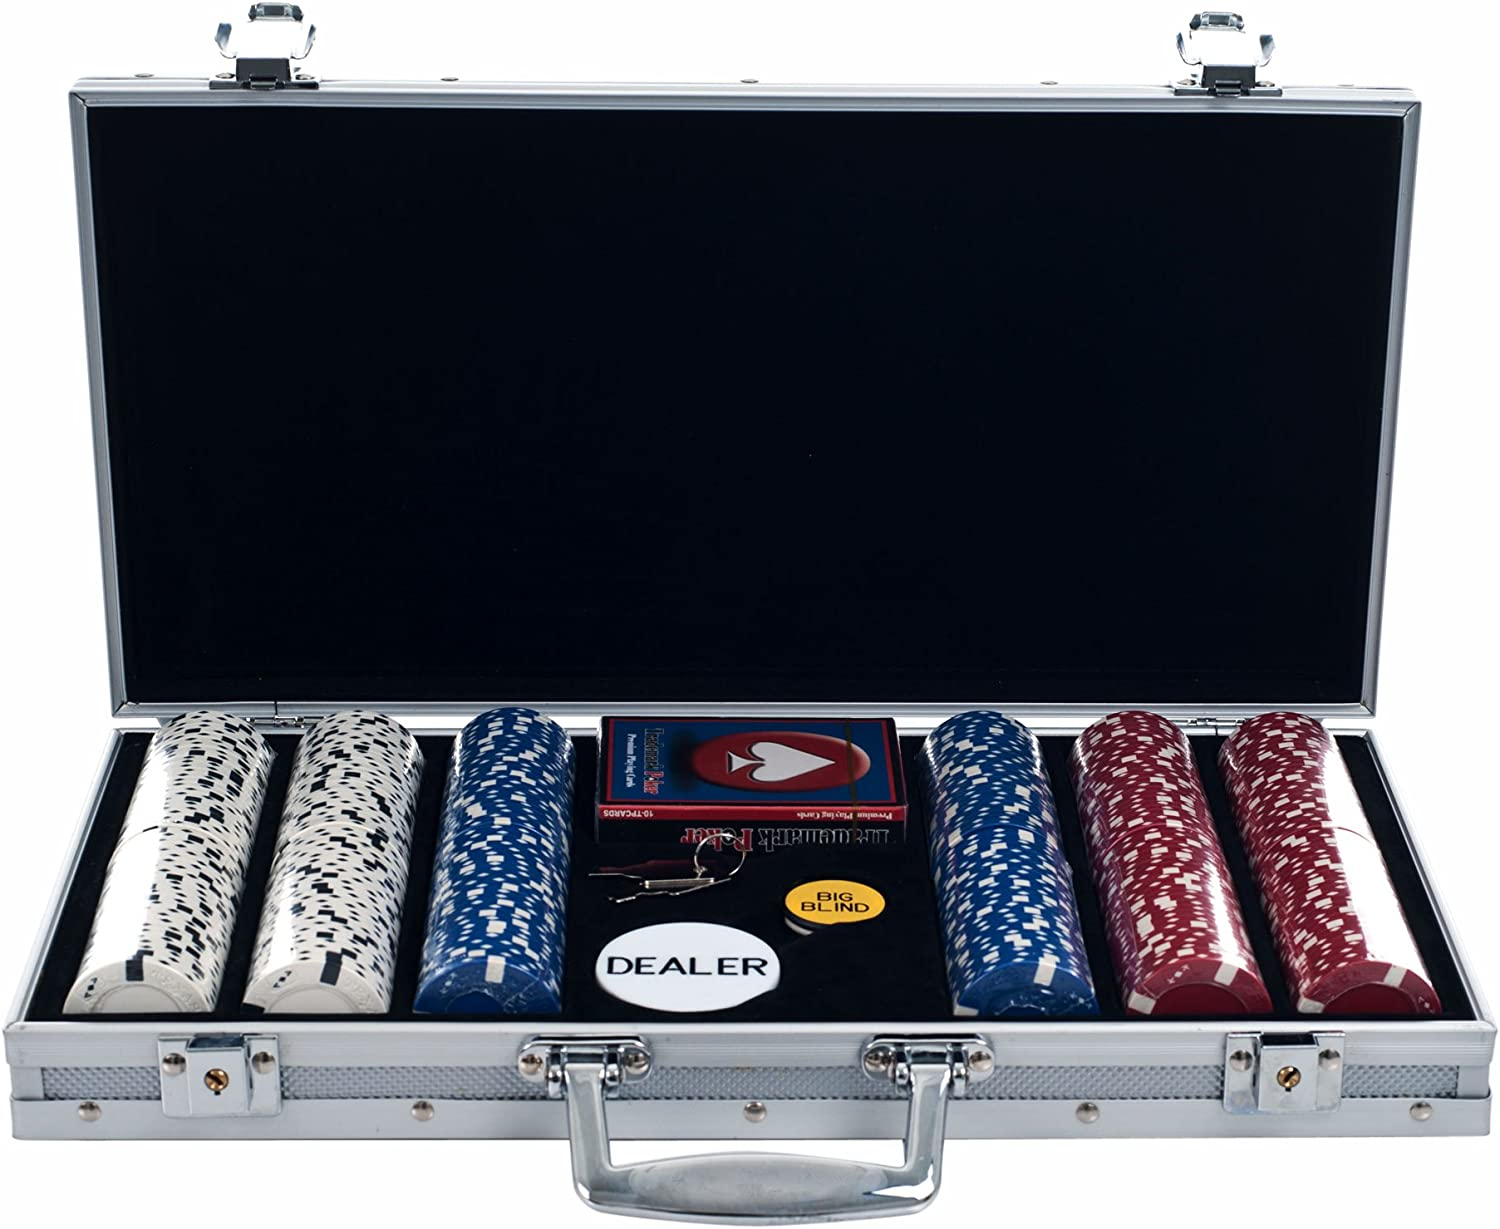 What is the euromillions jackpot this week